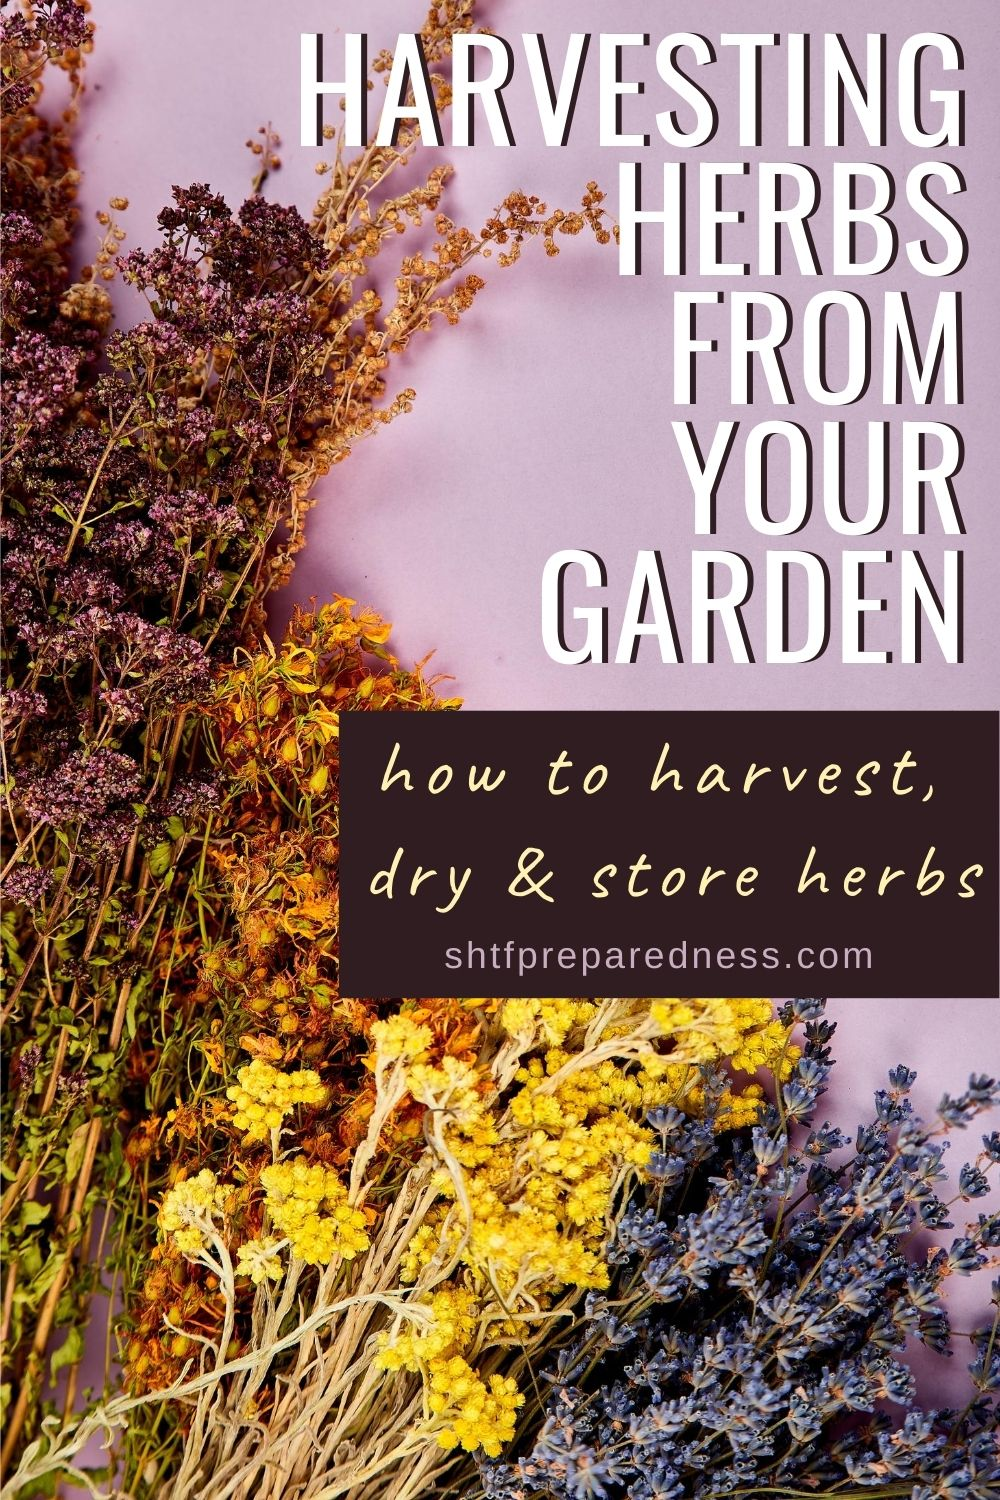 Harvesting herbs from your garden - Pinterest image